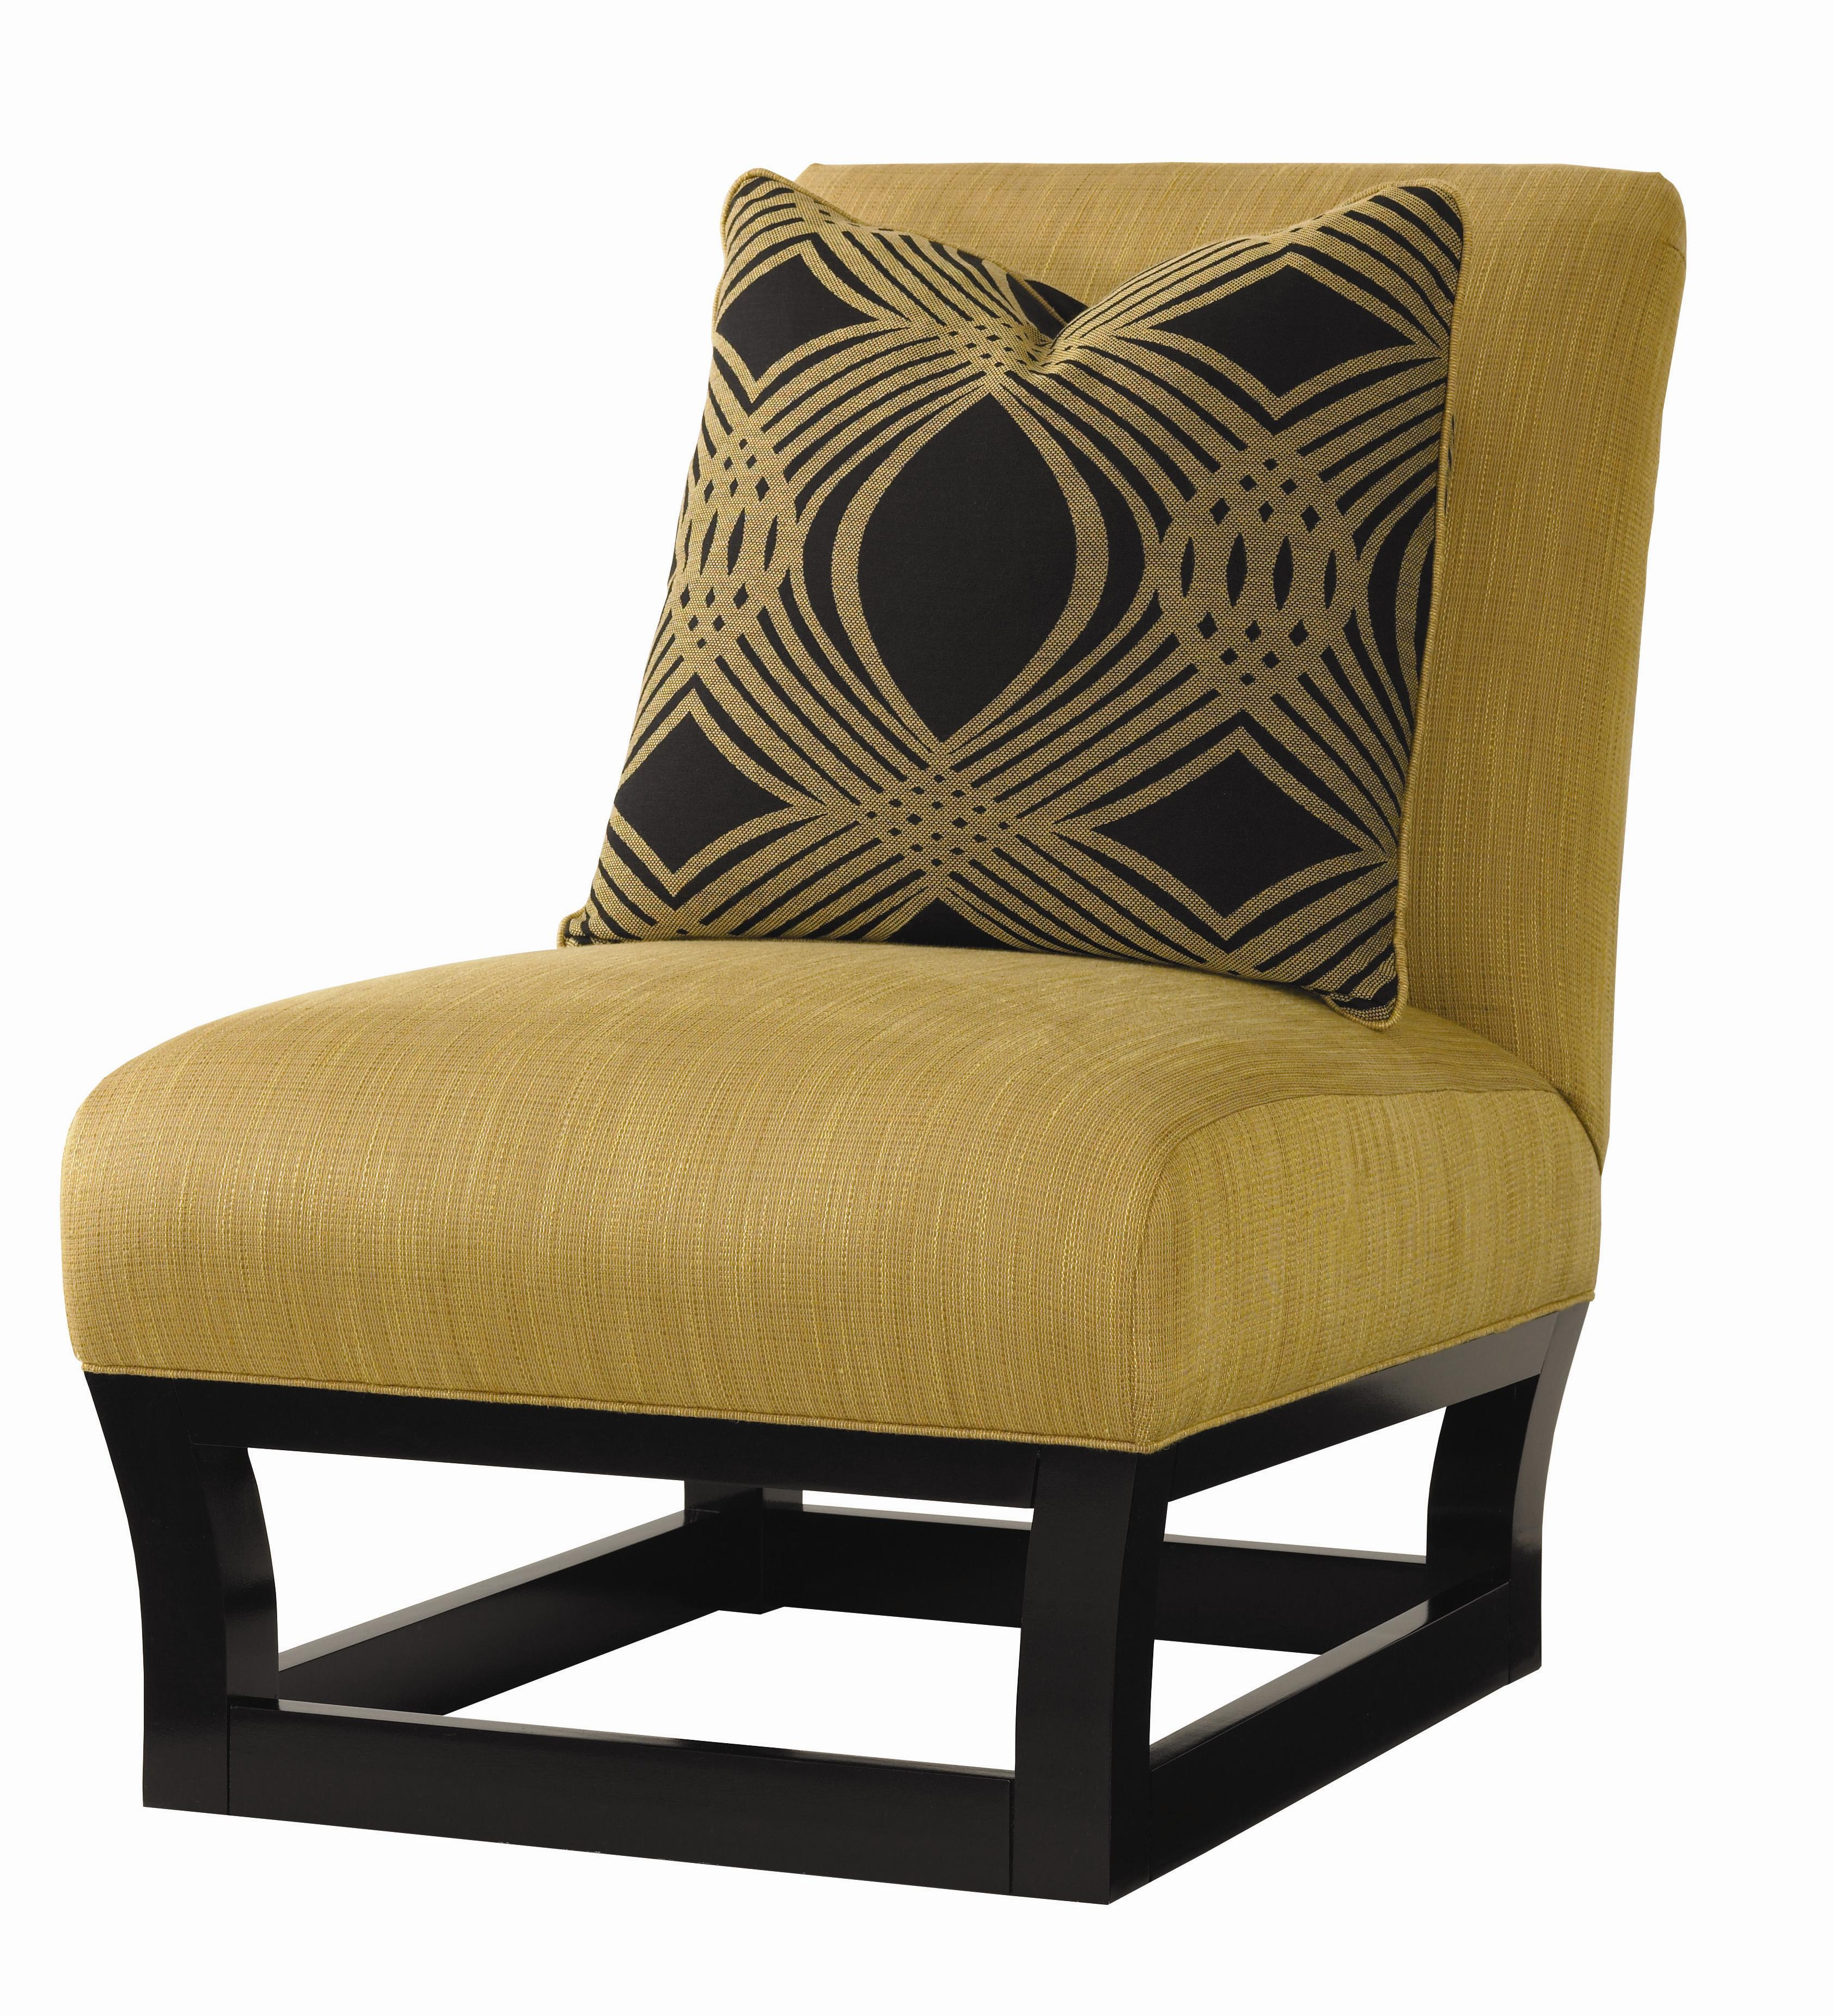 Ocean Club Fusion Chair by Tommy Bahama Home at Baer's Furniture